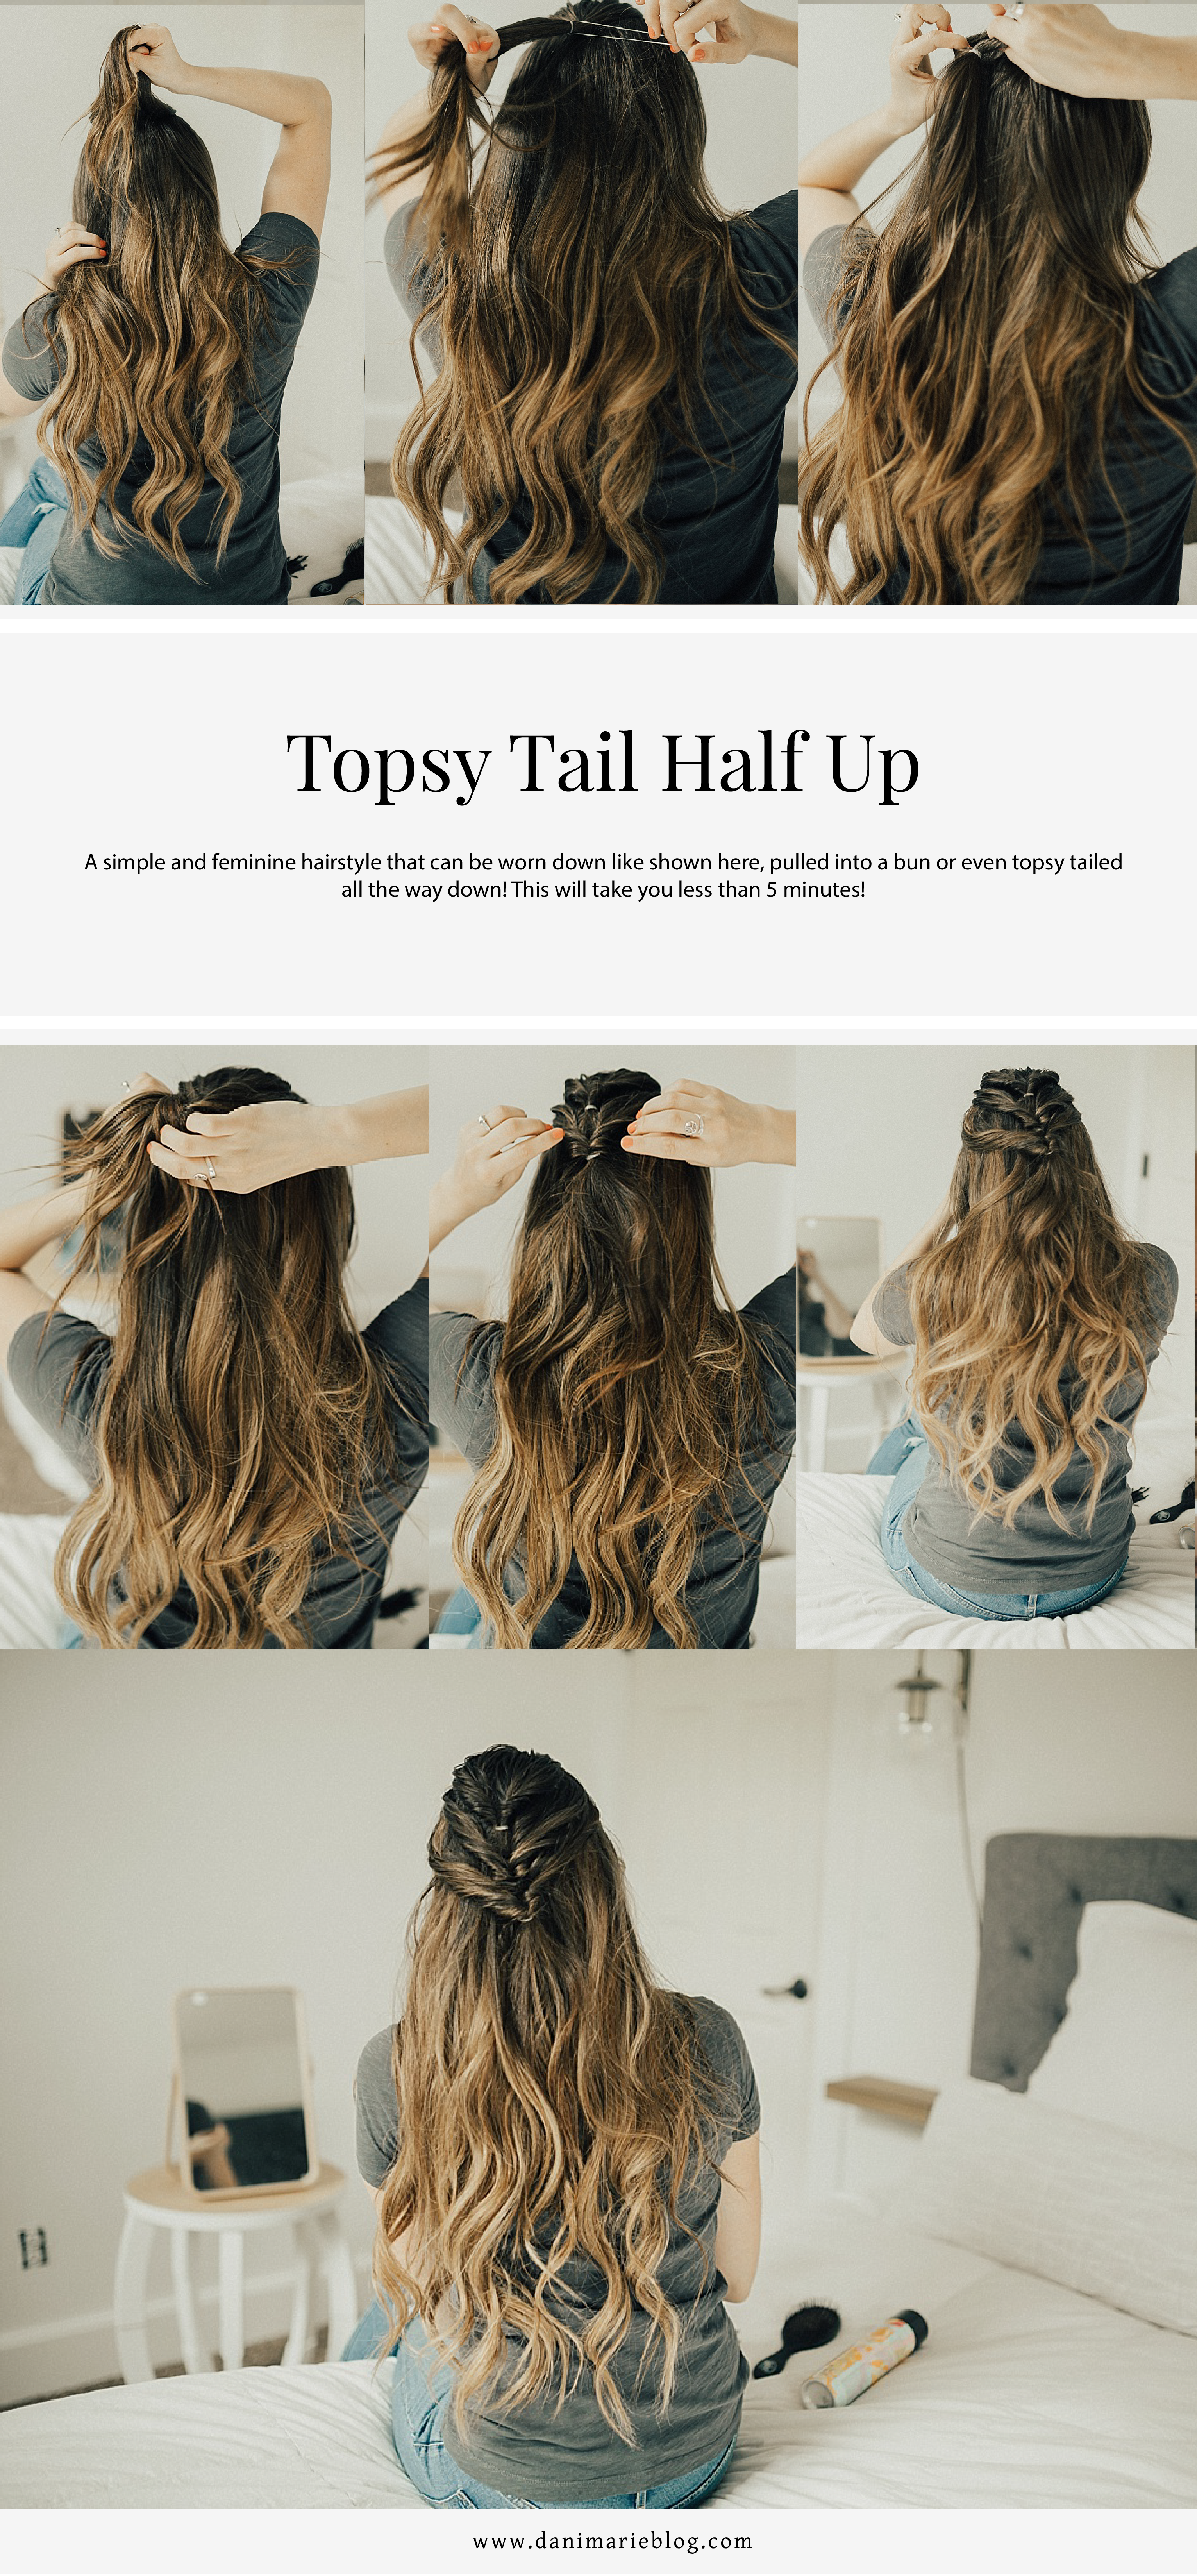 Easy DIY Topsy Half Up Hairstyle For Valentine's Day Dinner